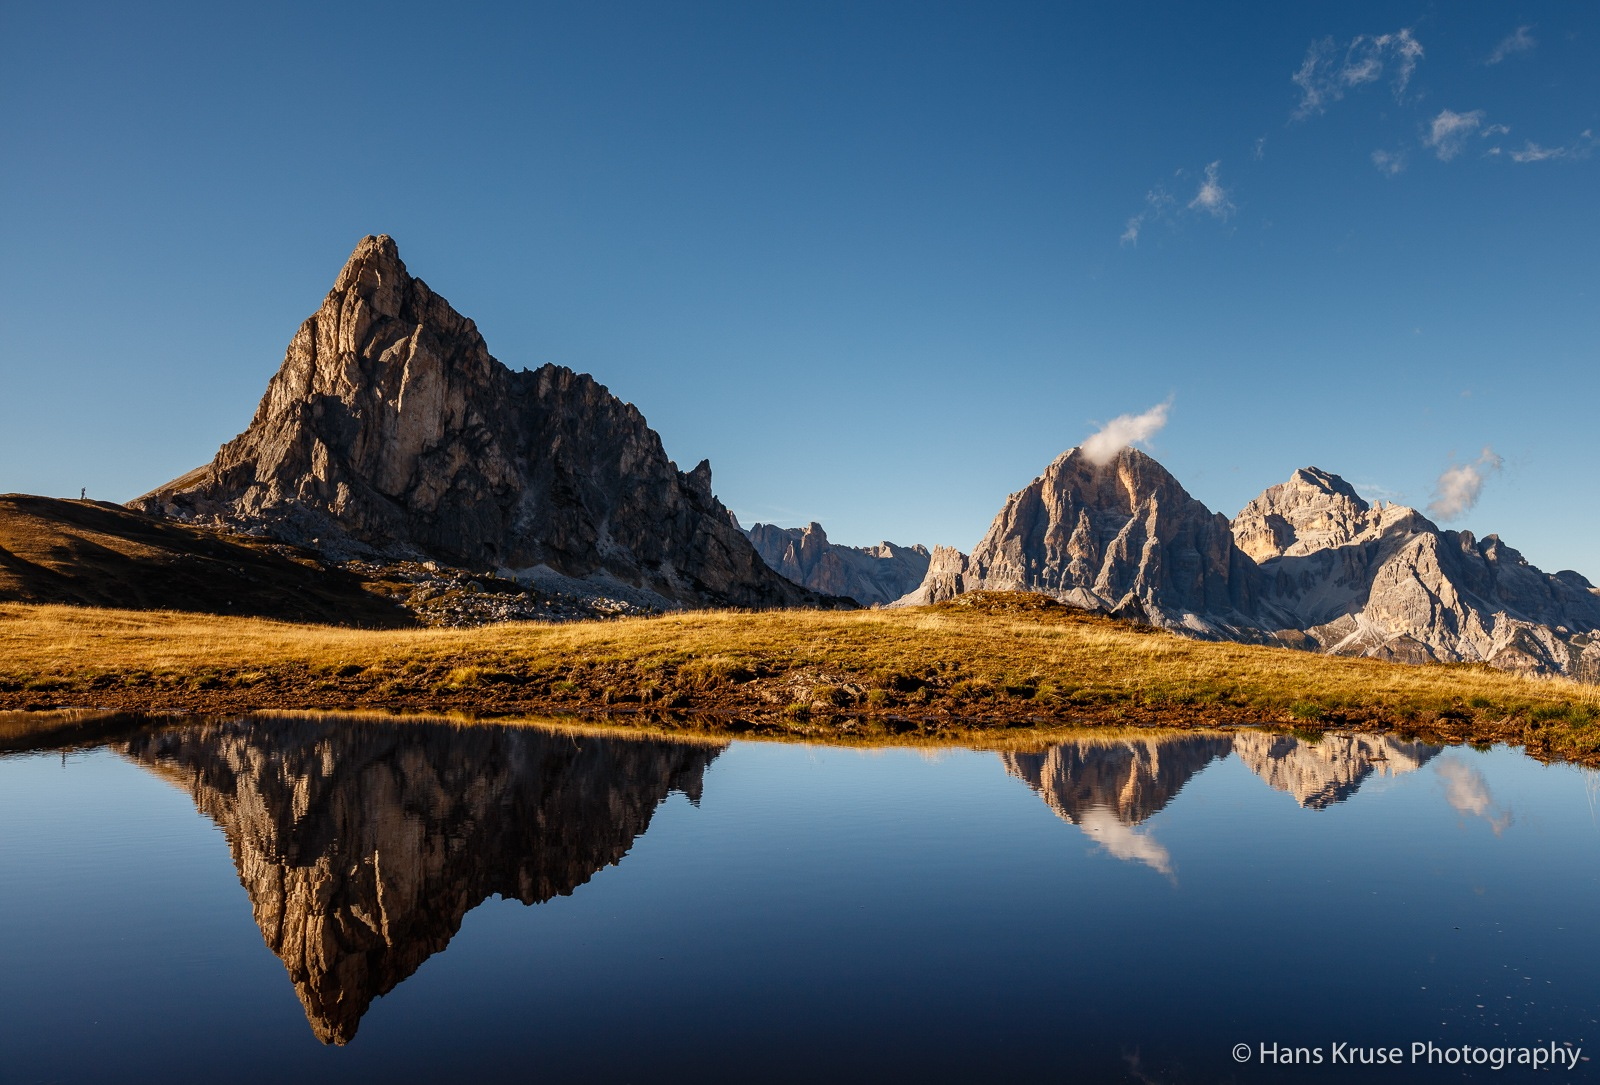 Reflection at Passo Giau by Hans Kruse